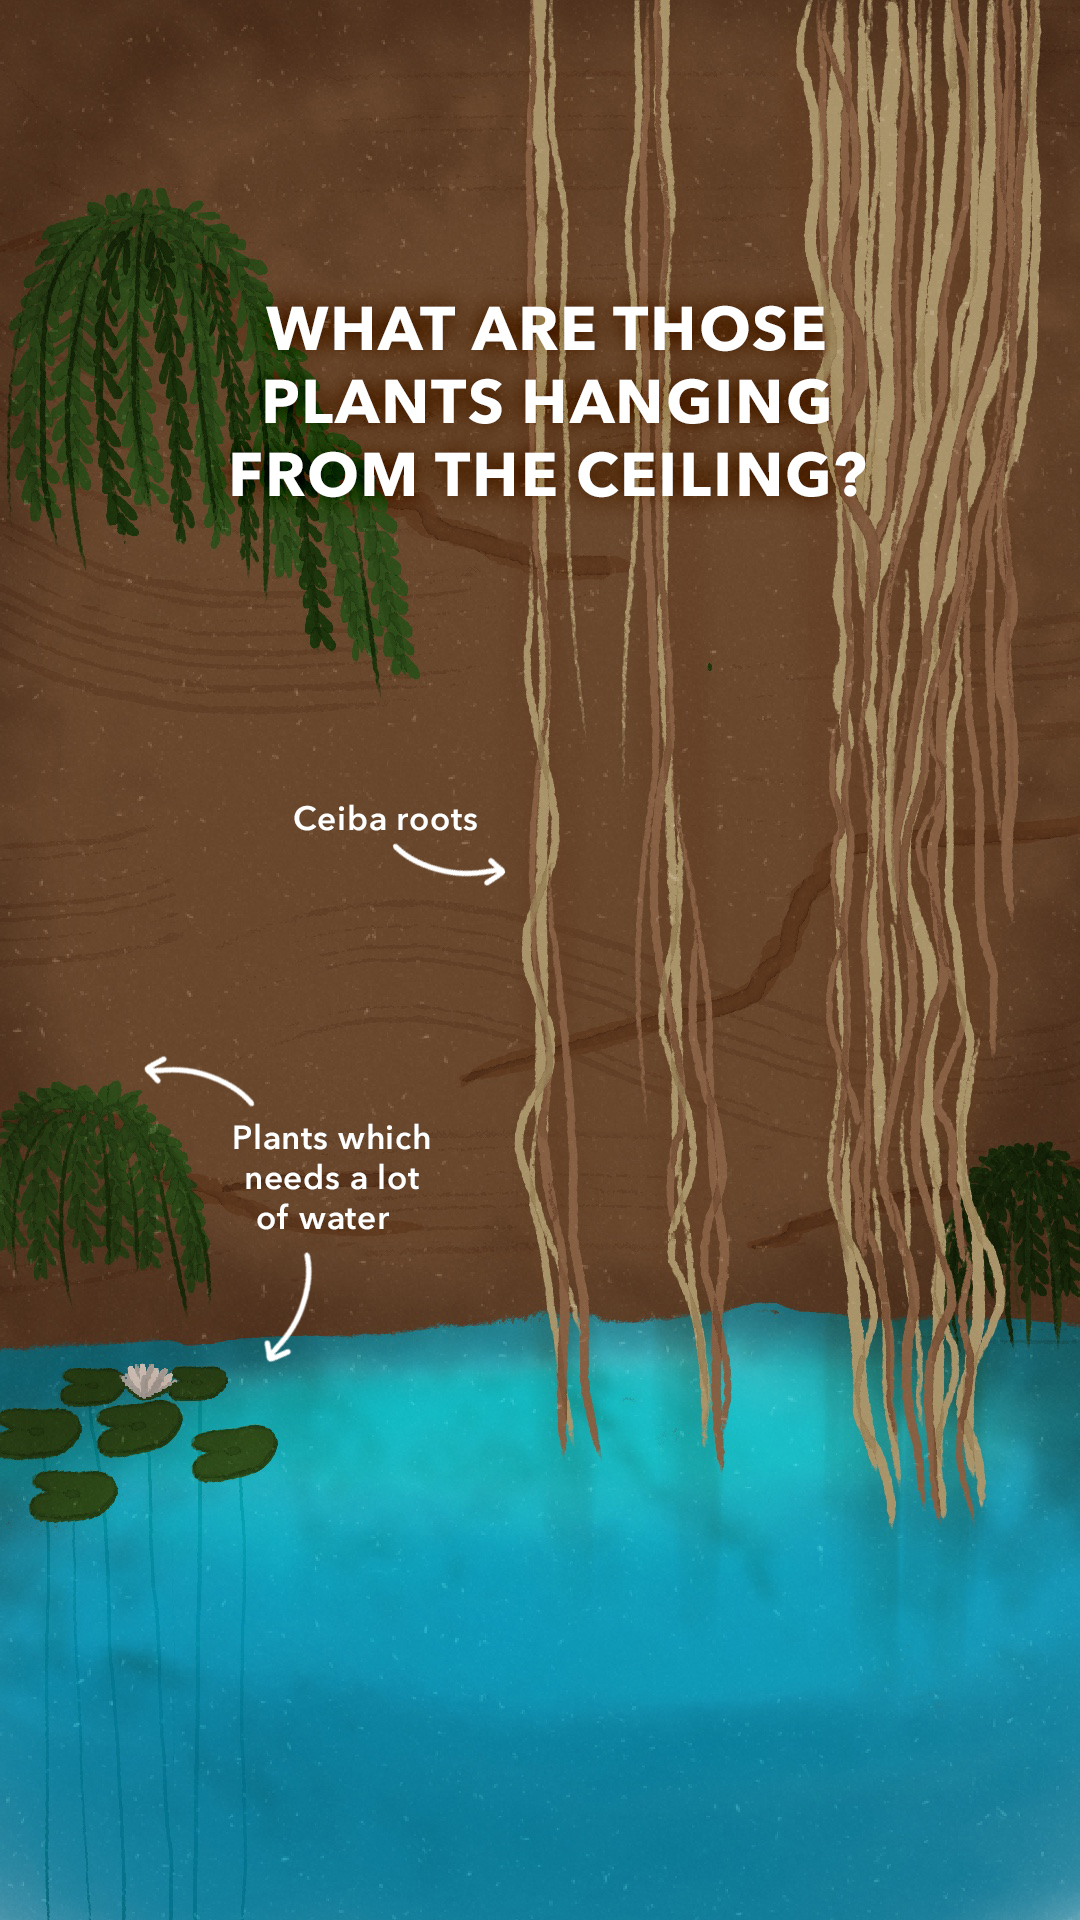 What are all those plants hanging from the ceiling?